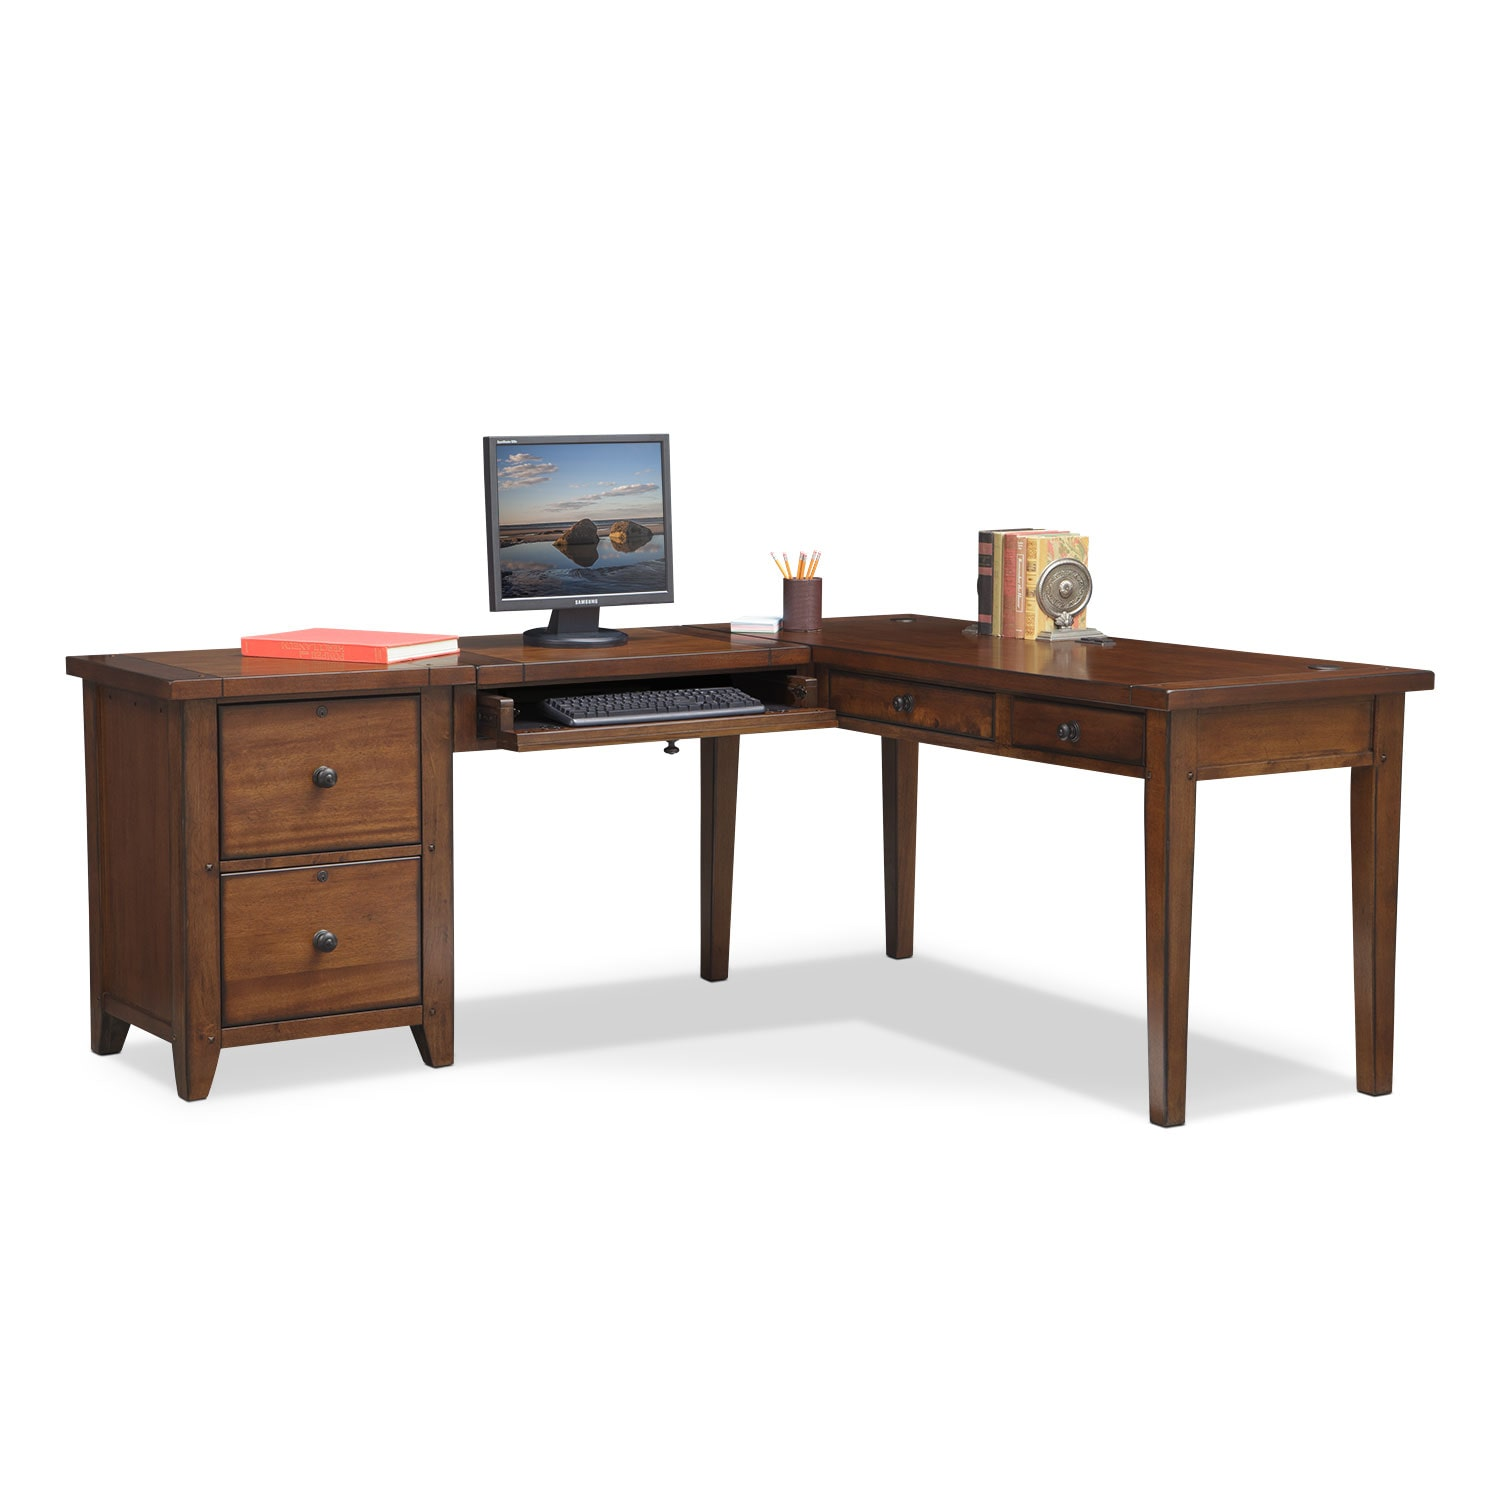 Home Office Furniture - Morgan L-Shaped Desk - Brown